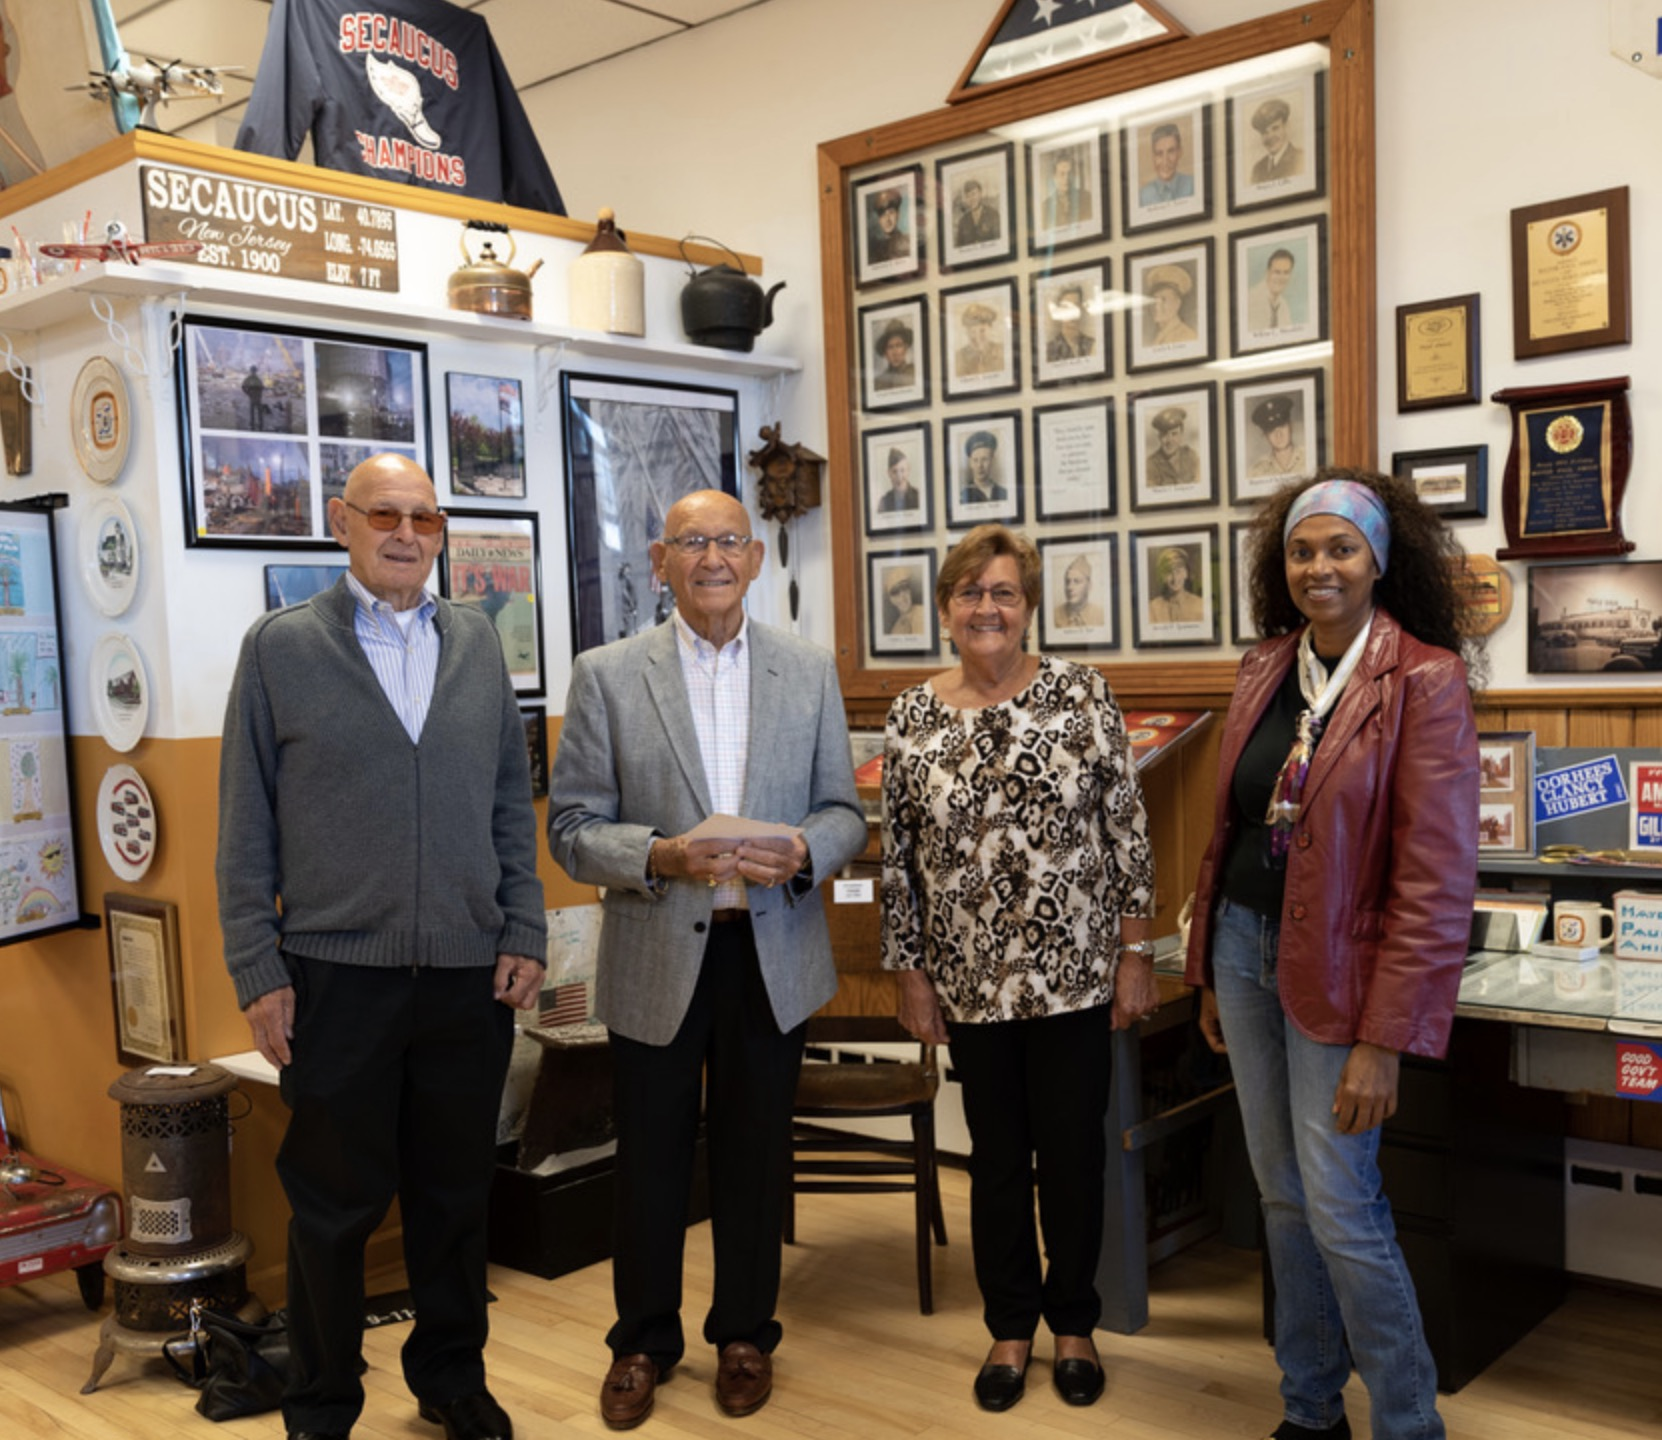 After the dedication the Meisch Family visited the museum.  From left to right:  John Heflich, Ralph Block, Dottie Heflich and Angela.